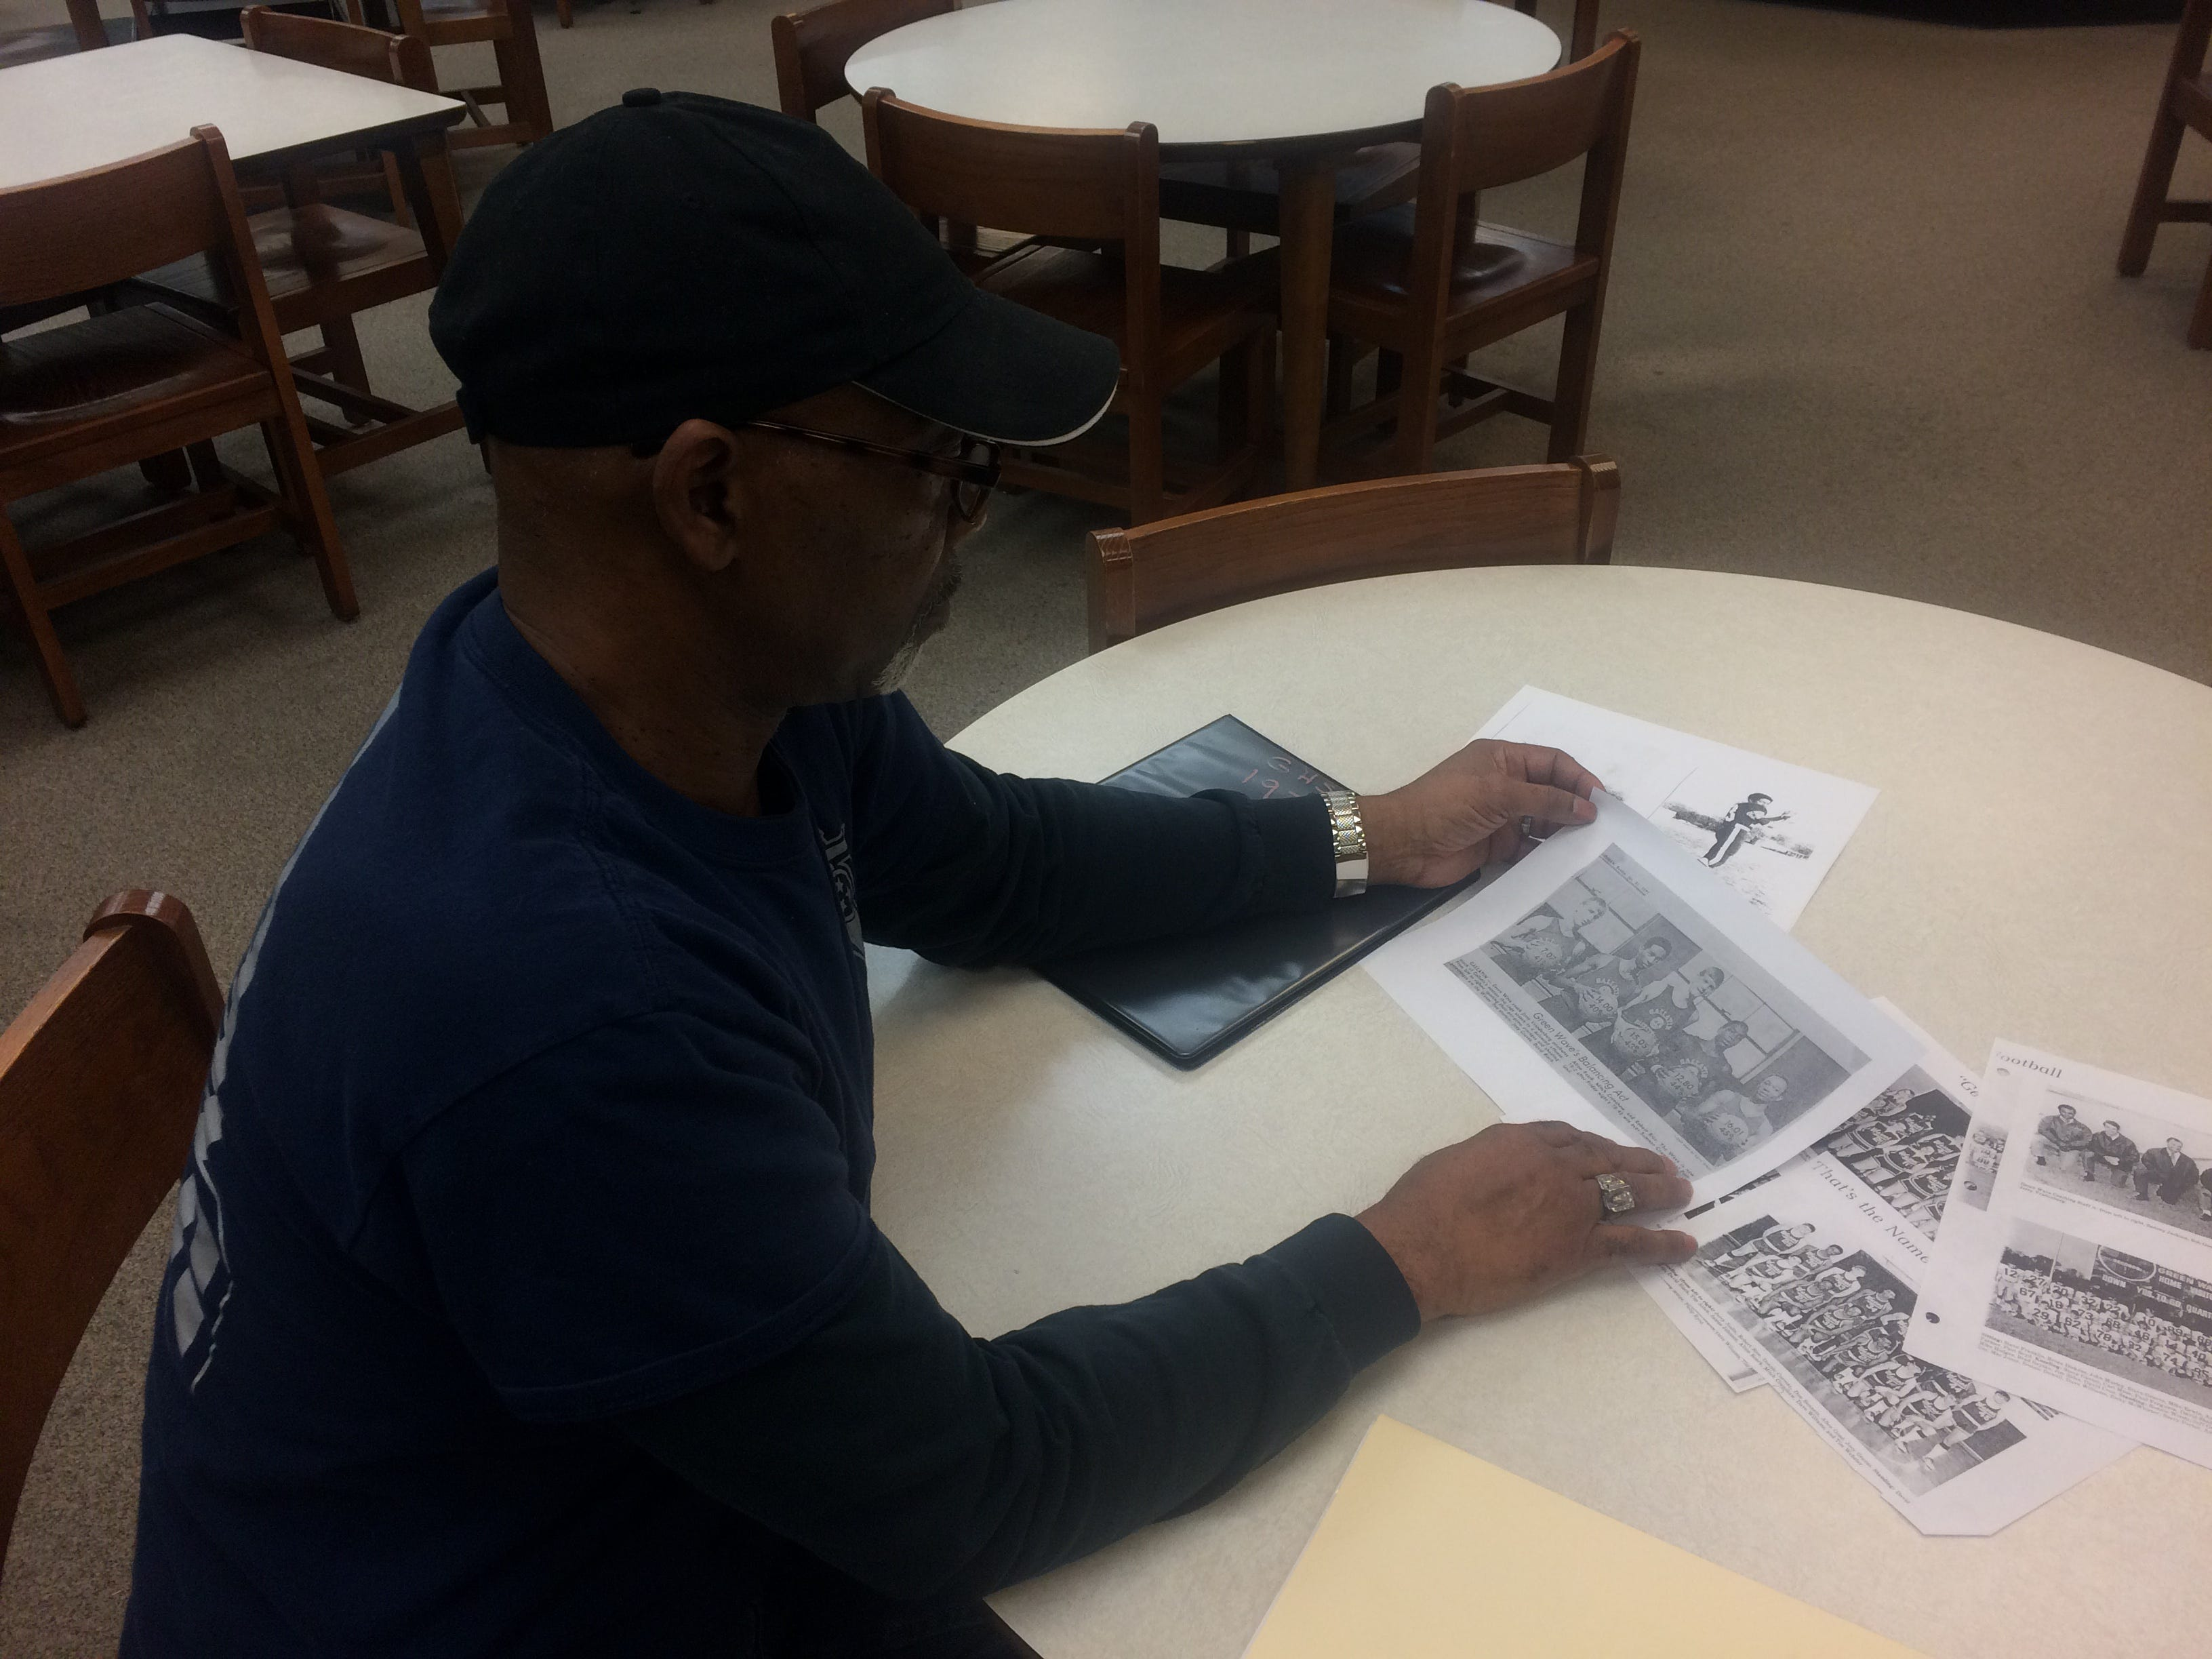 """Robert Rice looks through photocopies of Gallatin High School yearbook photos from the early 1970s in the school's library. Rice played basketball for the team when the school merged with Union High School in 1970-71. He said that's when it became """"the real Gallatin High."""""""